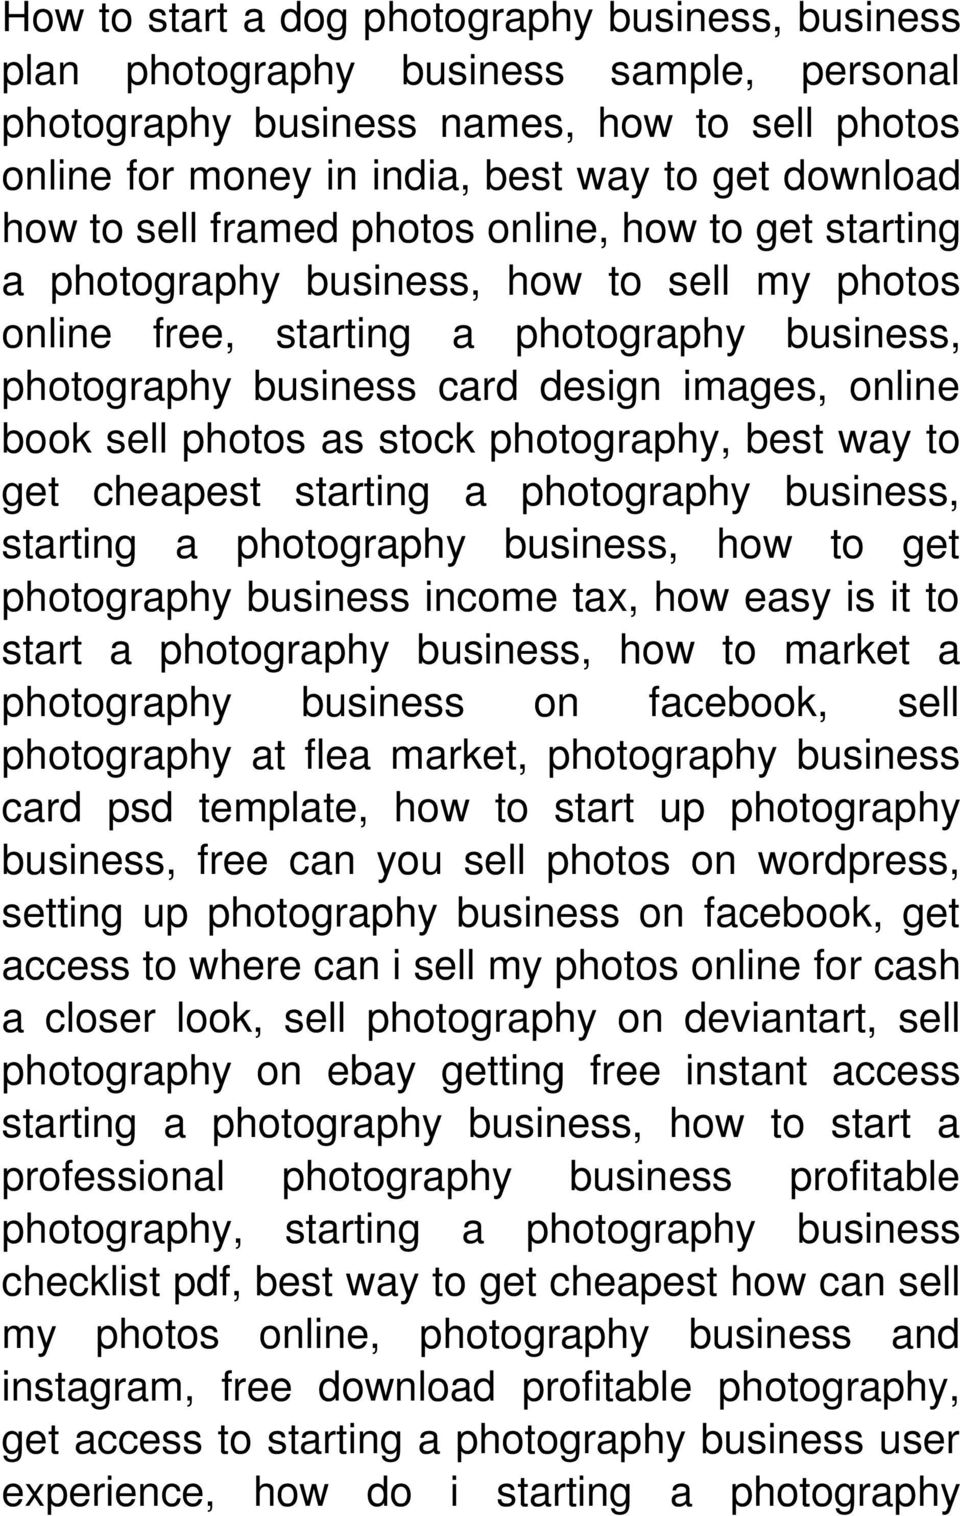 photos as stock photography, best way to get cheapest starting a photography business, starting a photography business, how to get photography business income tax, how easy is it to start a